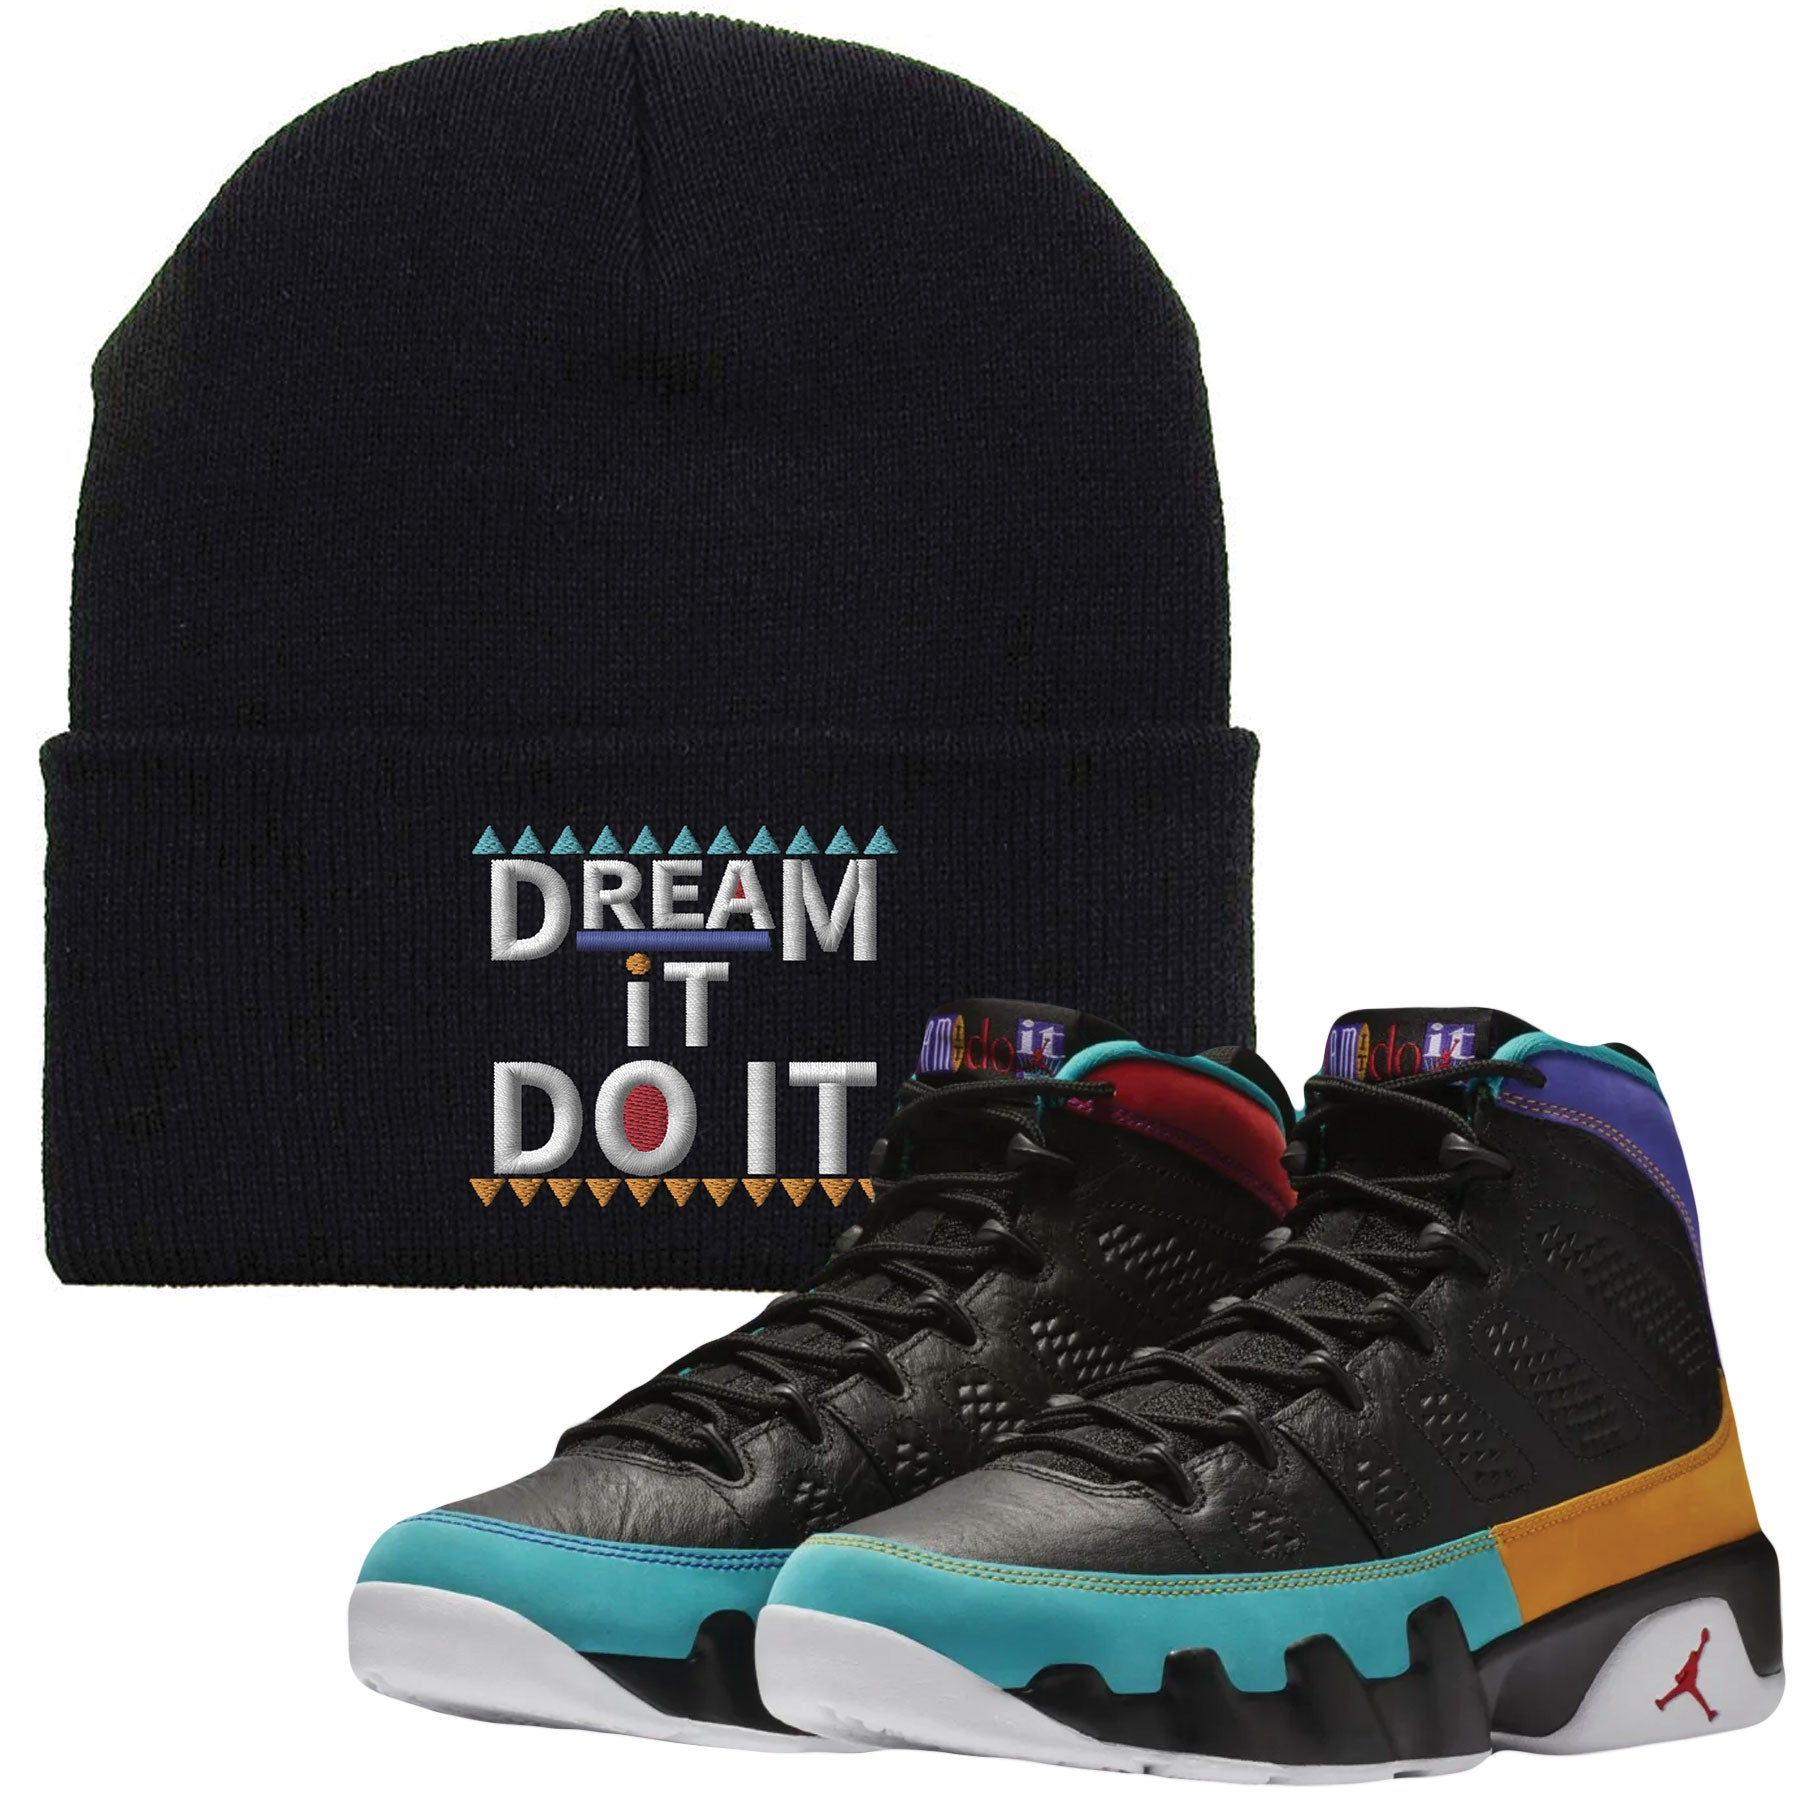 check out eb68e 3026d Shop sneaker matching clothing to match your pair of Jordan 9 Dream It Do It  Sneakers